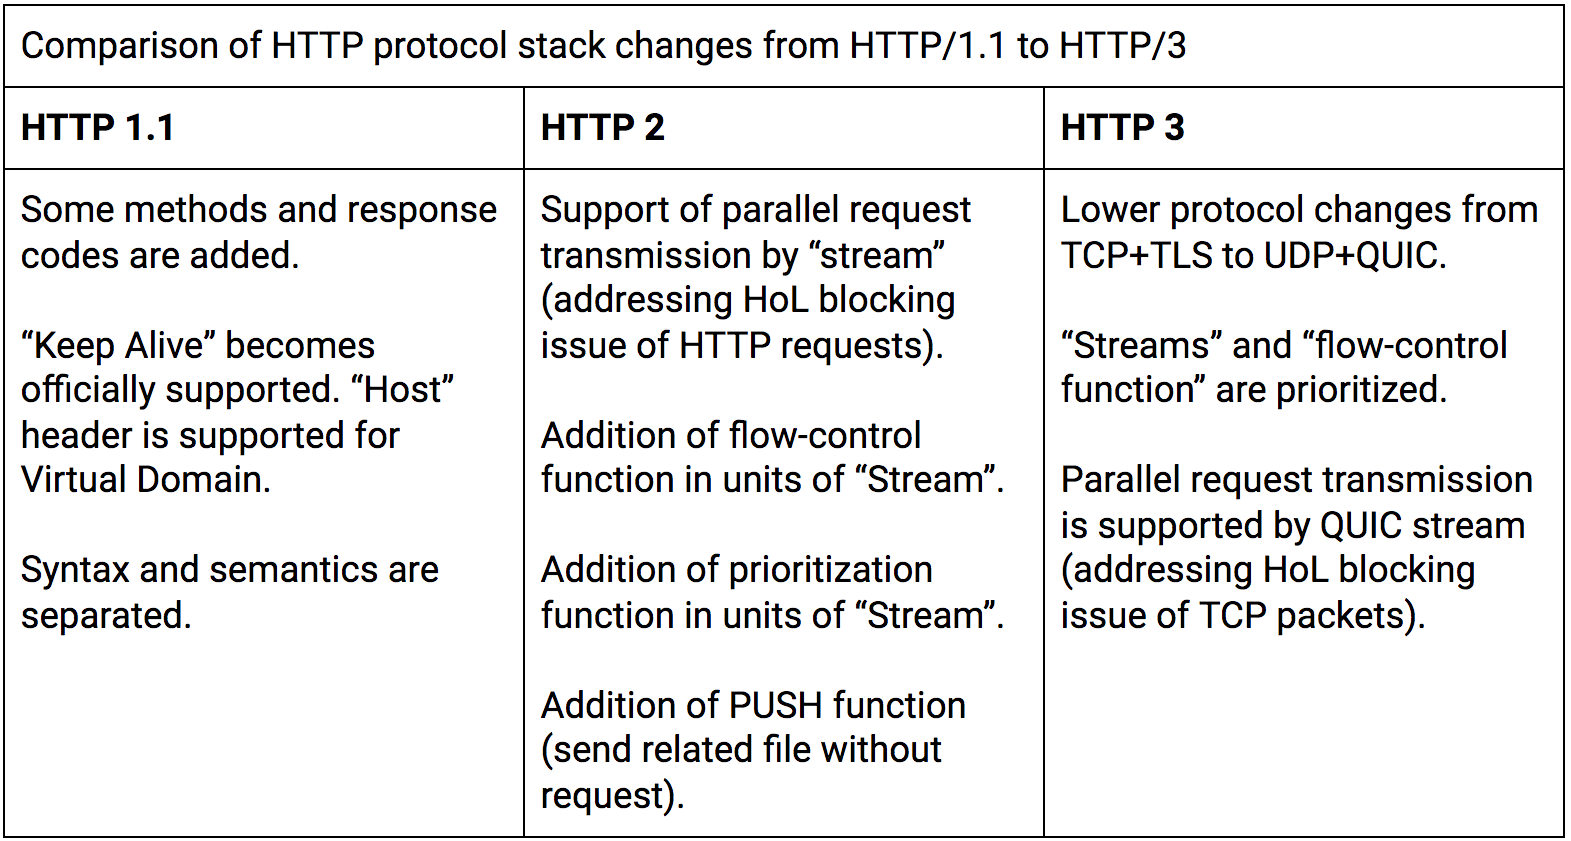 TABLE – HTTP 1.1 TO 3 CHANGES